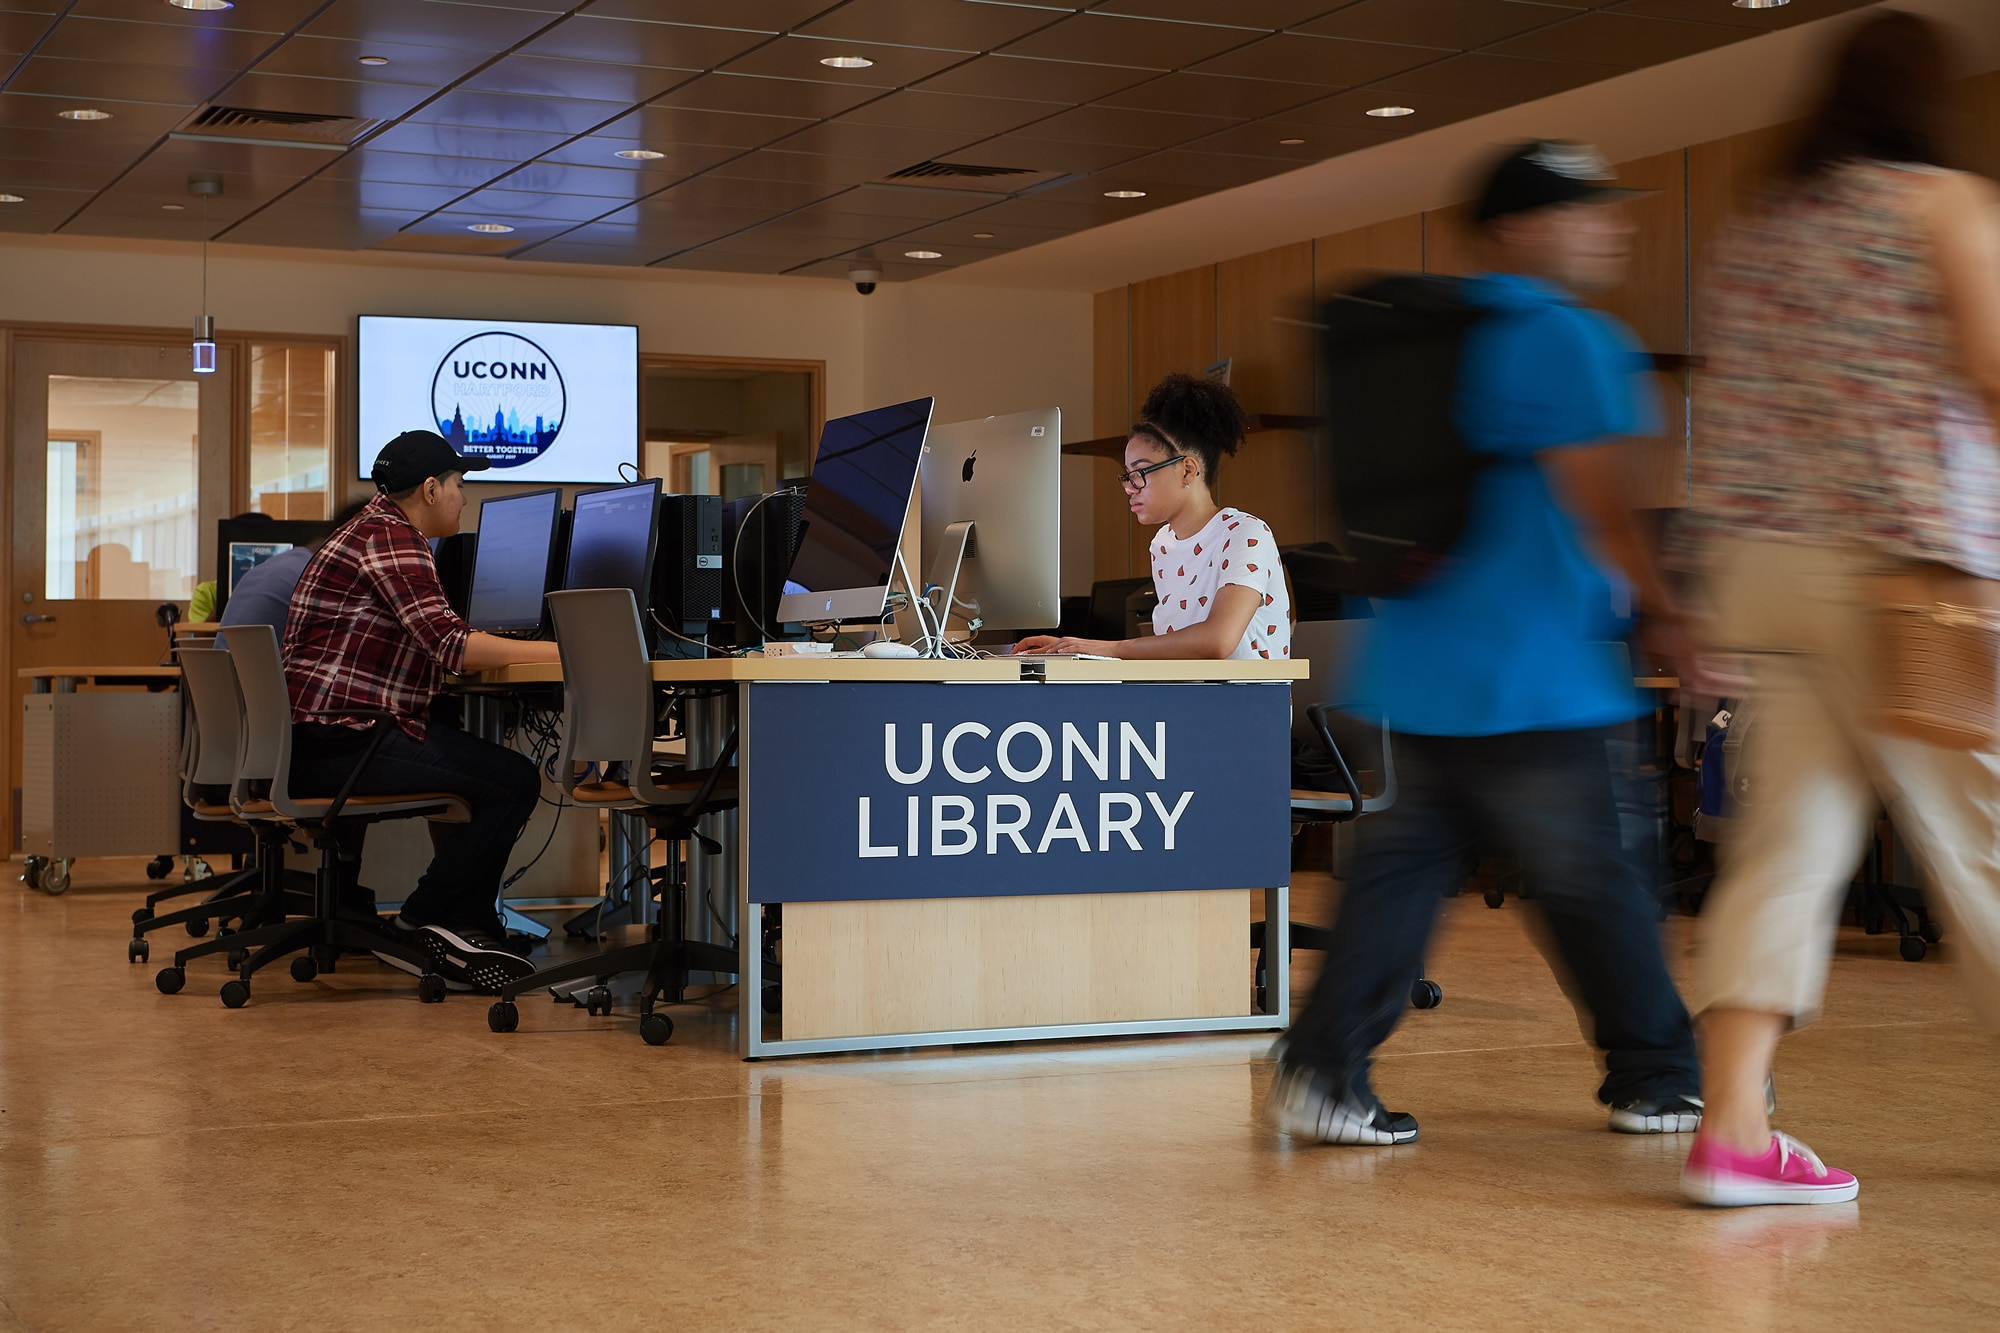 The case for public and academic shared libraries in Connecticut